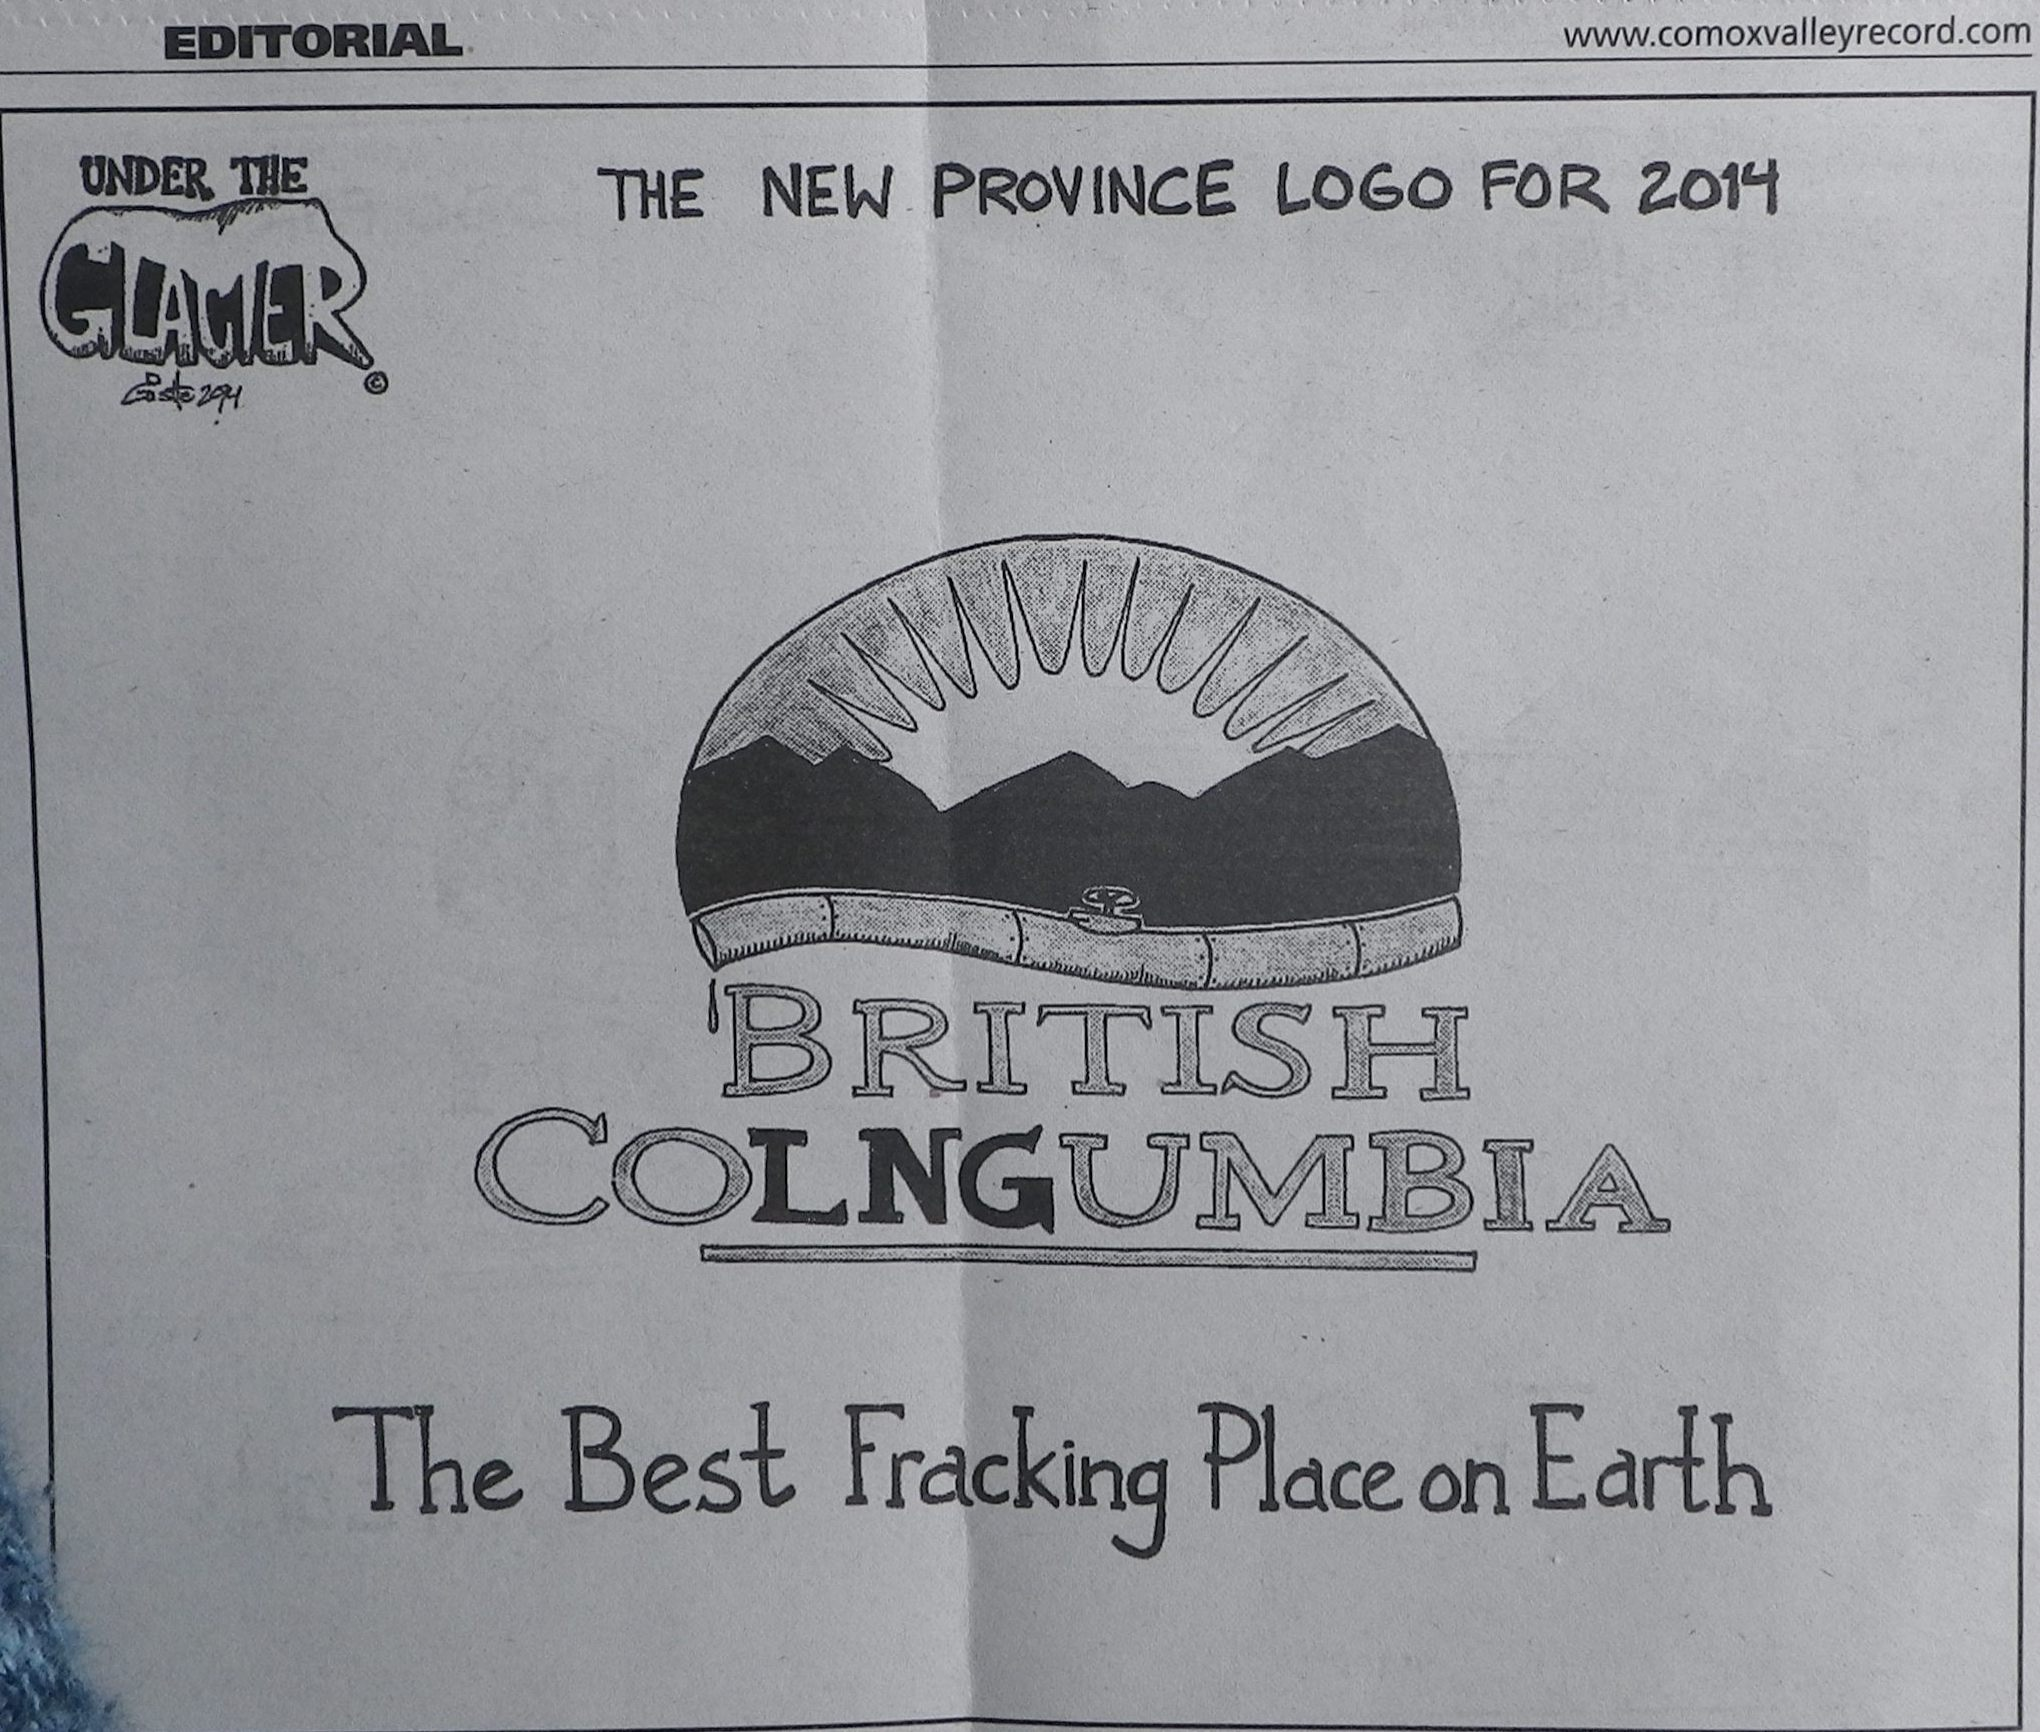 2014 02 27 BC The Best Fracking Place on Earth British Colngumbia cartoon comox valley record